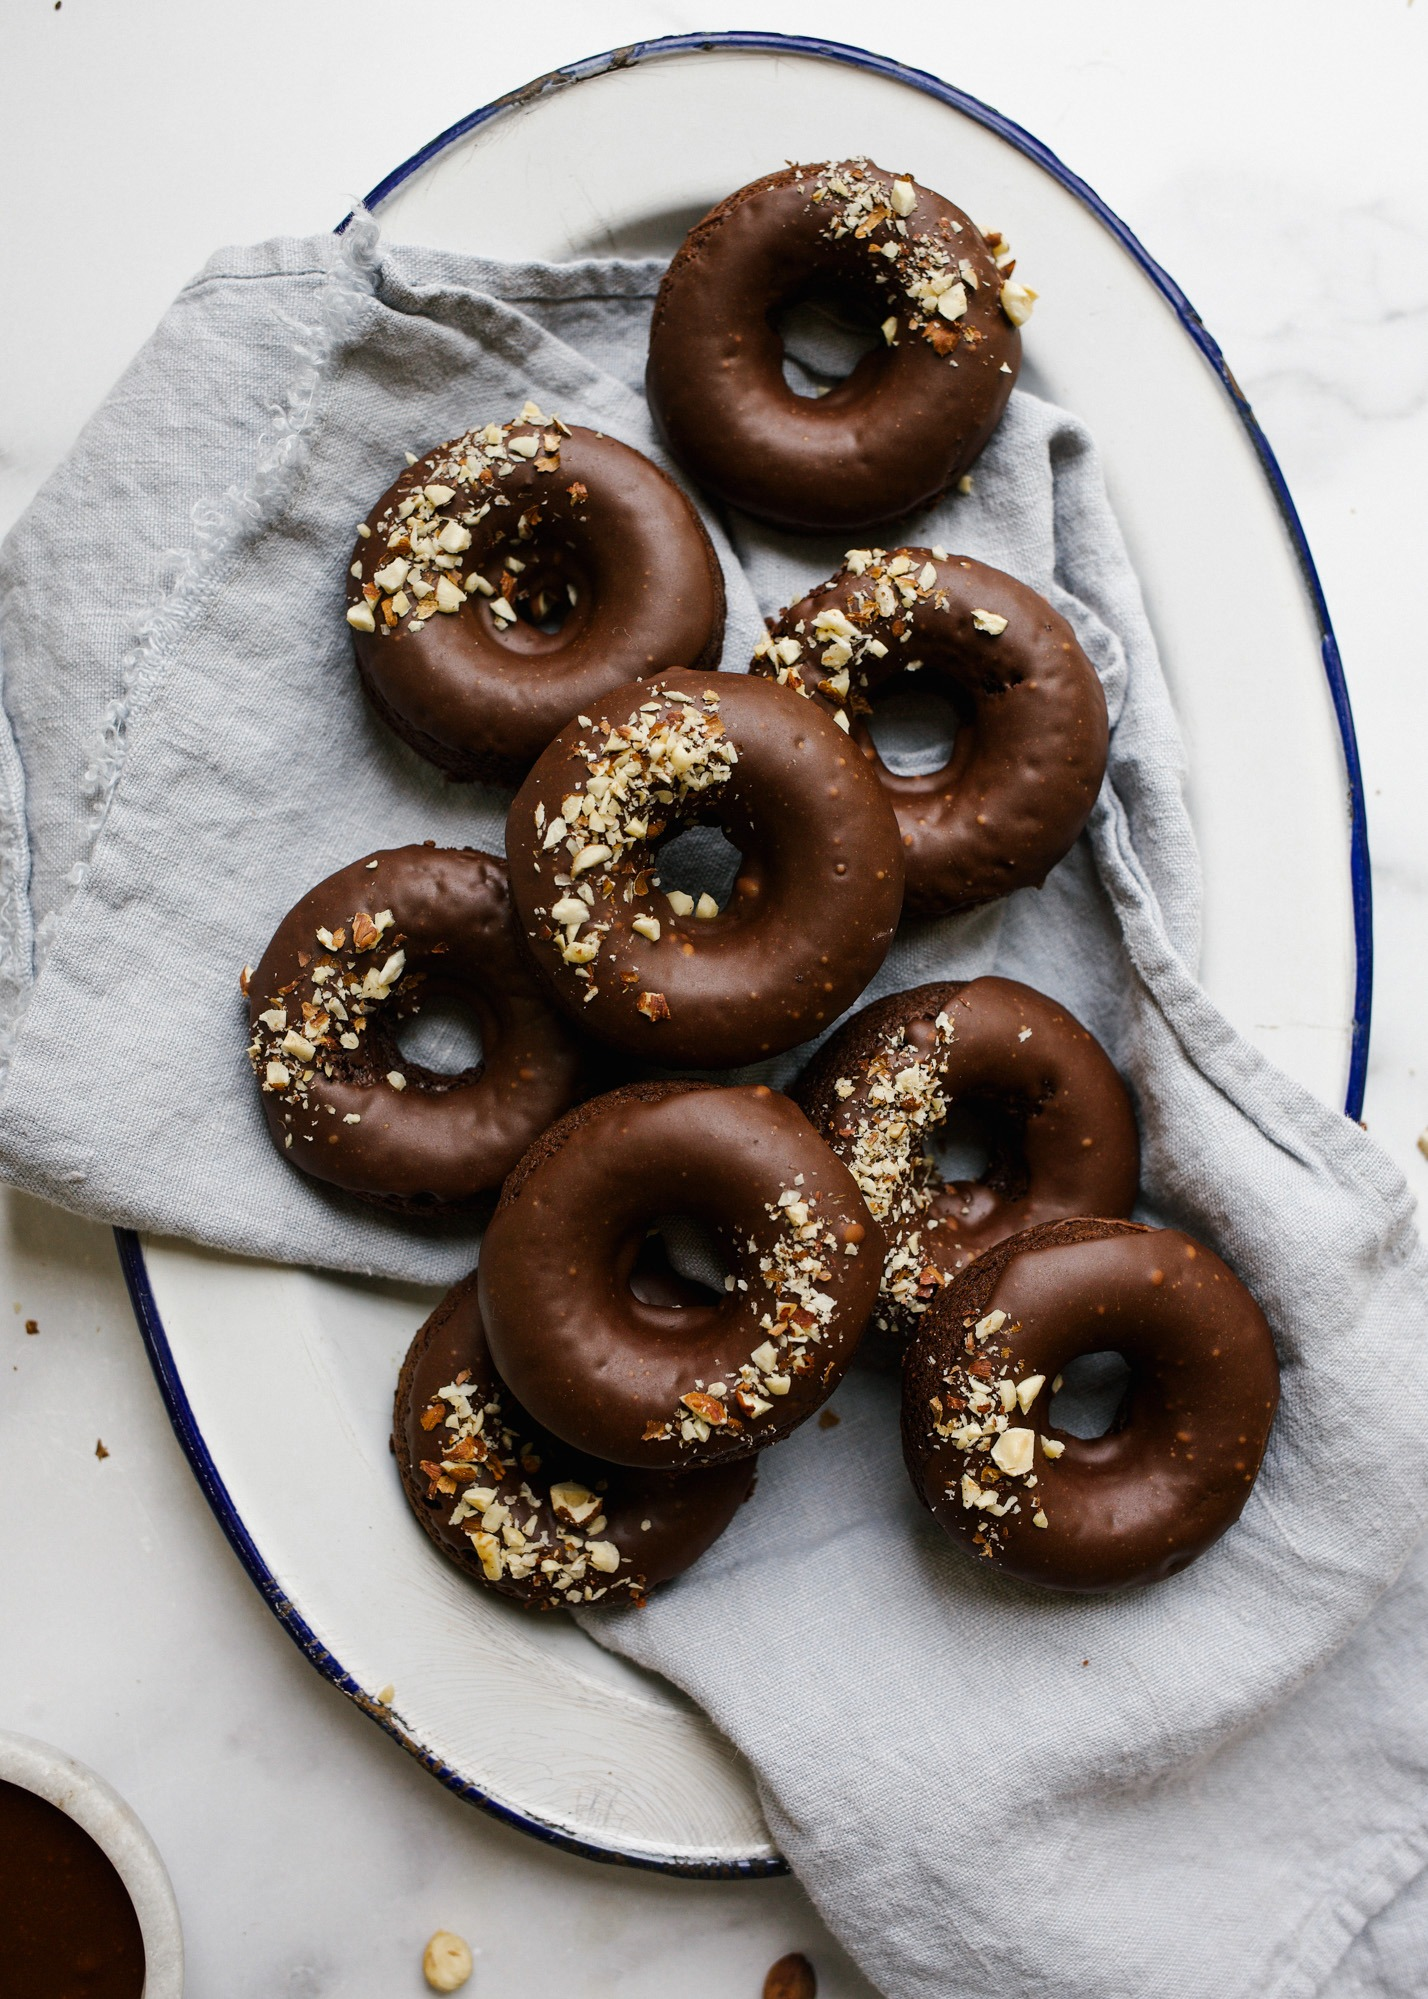 Chocolate Hazelnut Doughnuts by Wood and Spoon blog. These are baked dark chocolate cocoa powder donuts makes with melted butter and topped with a chocolate hazelnut glaze. Sprinkled nuts on top beauty up these quick breakfast pastries that can be made in one bowl! Read more about the recipe on thewoodandspoon.com.